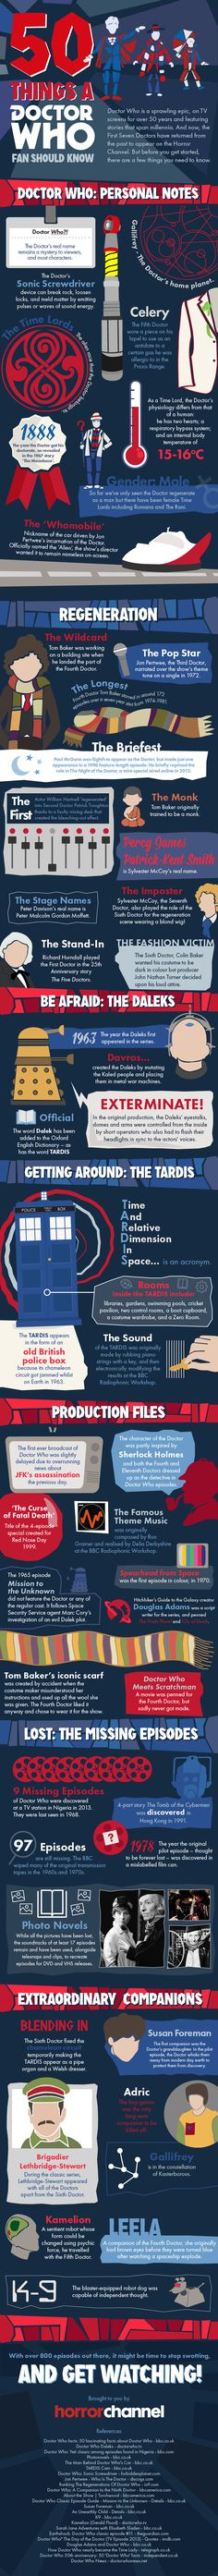 'Doctor Who' infographic: 50 things every fan should know - CultBox